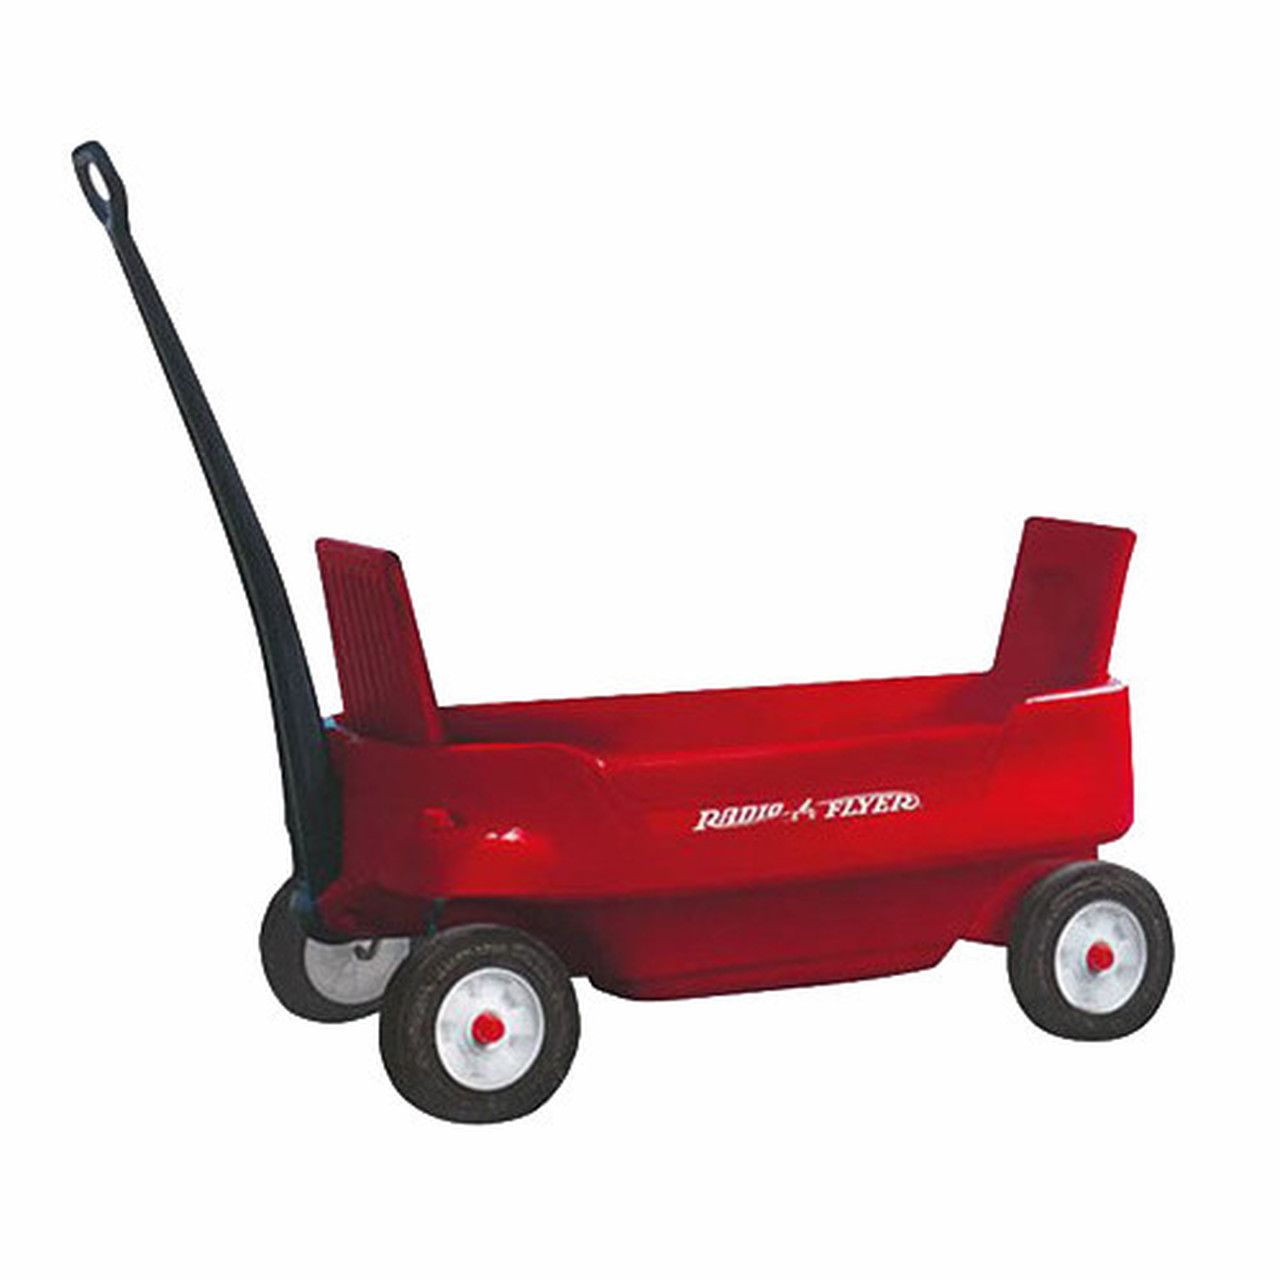 Radio Flyer 2700Z Pathfinder Wagon